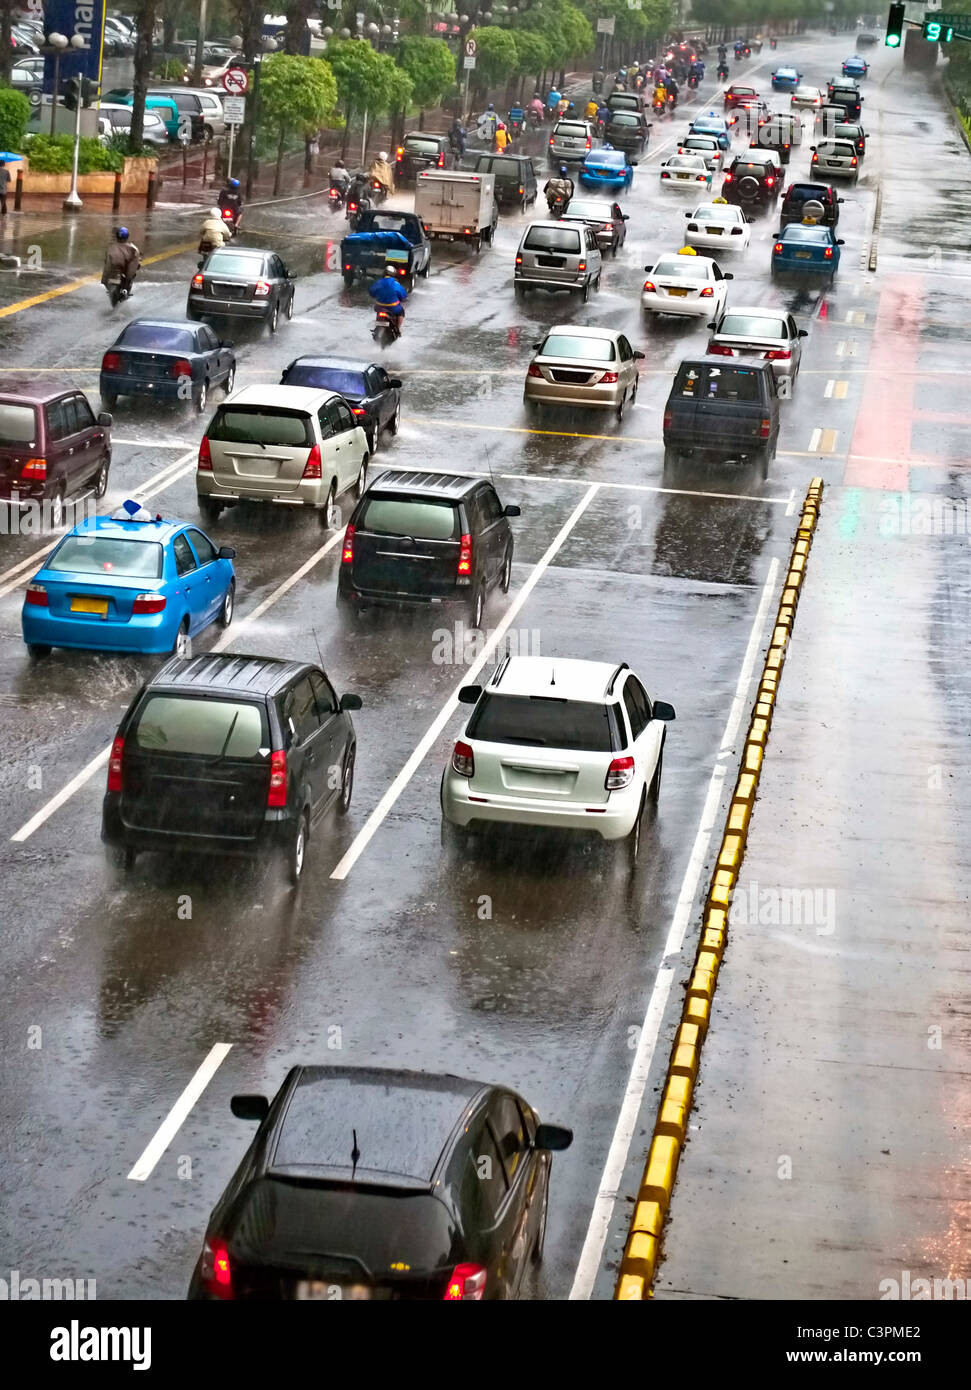 Crowded traffic jam in urban street in bad weather - Stock Image